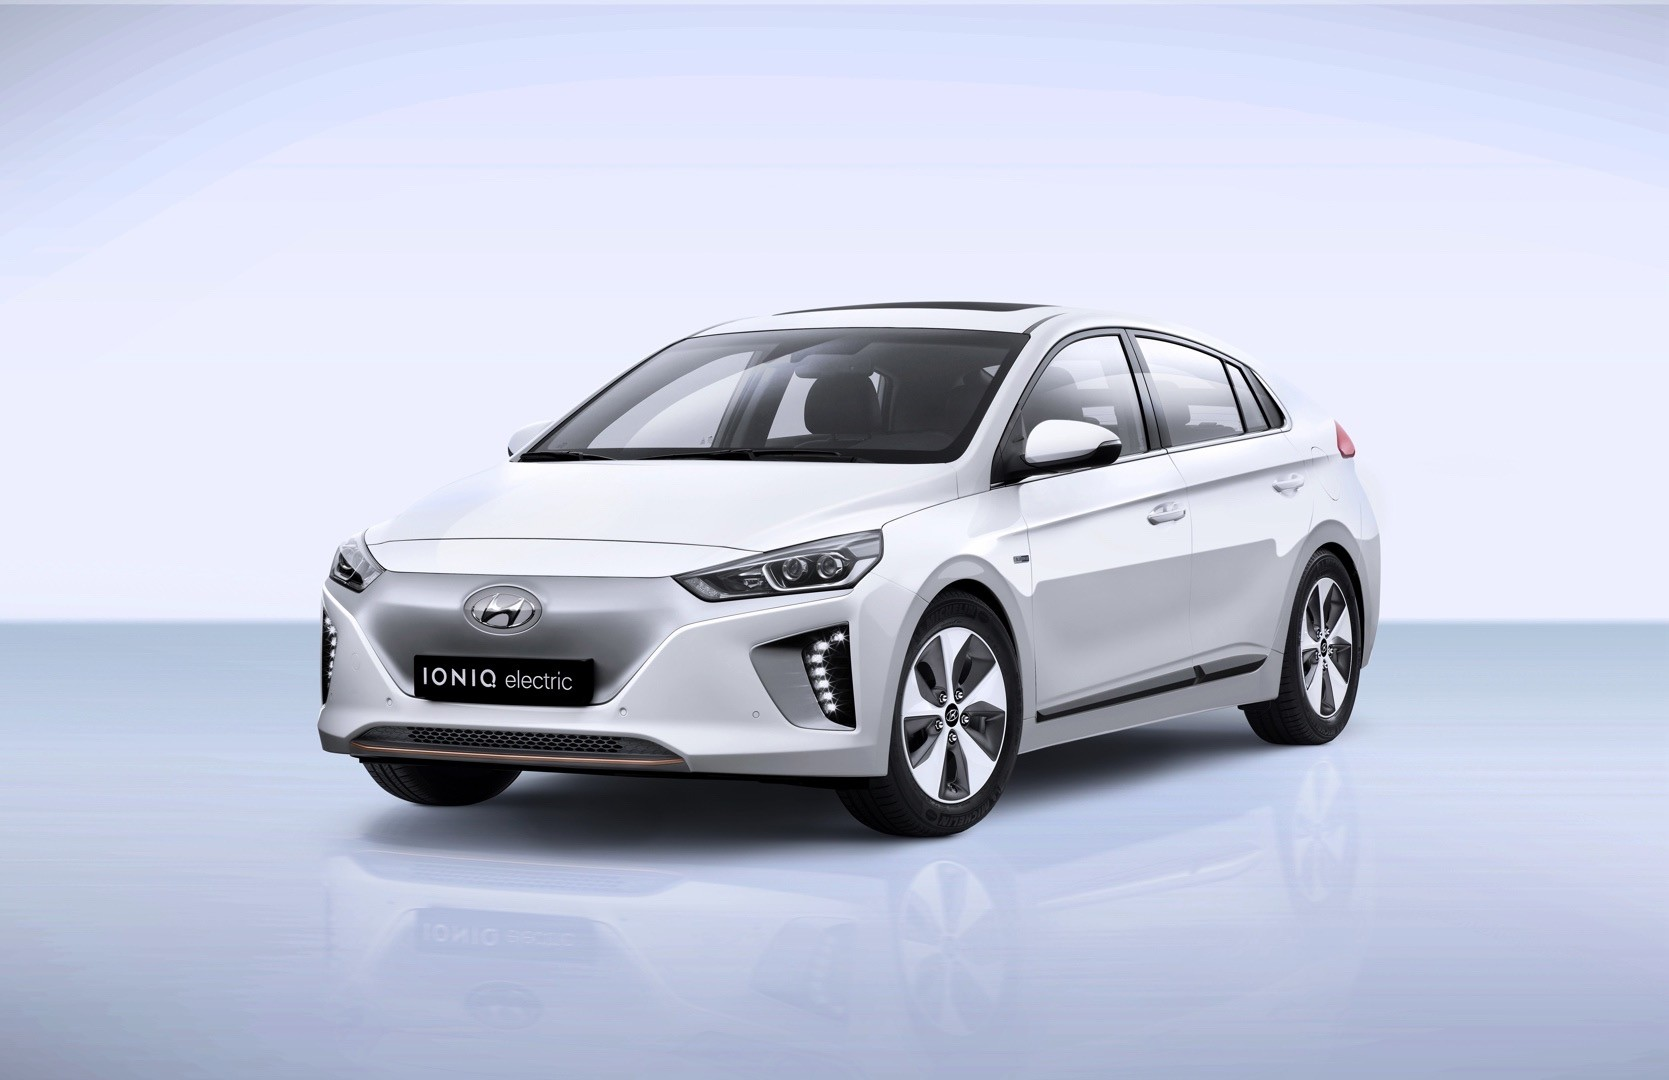 hyundai prices u s spec ioniq hybrid and ioniq electric autoevolution. Black Bedroom Furniture Sets. Home Design Ideas